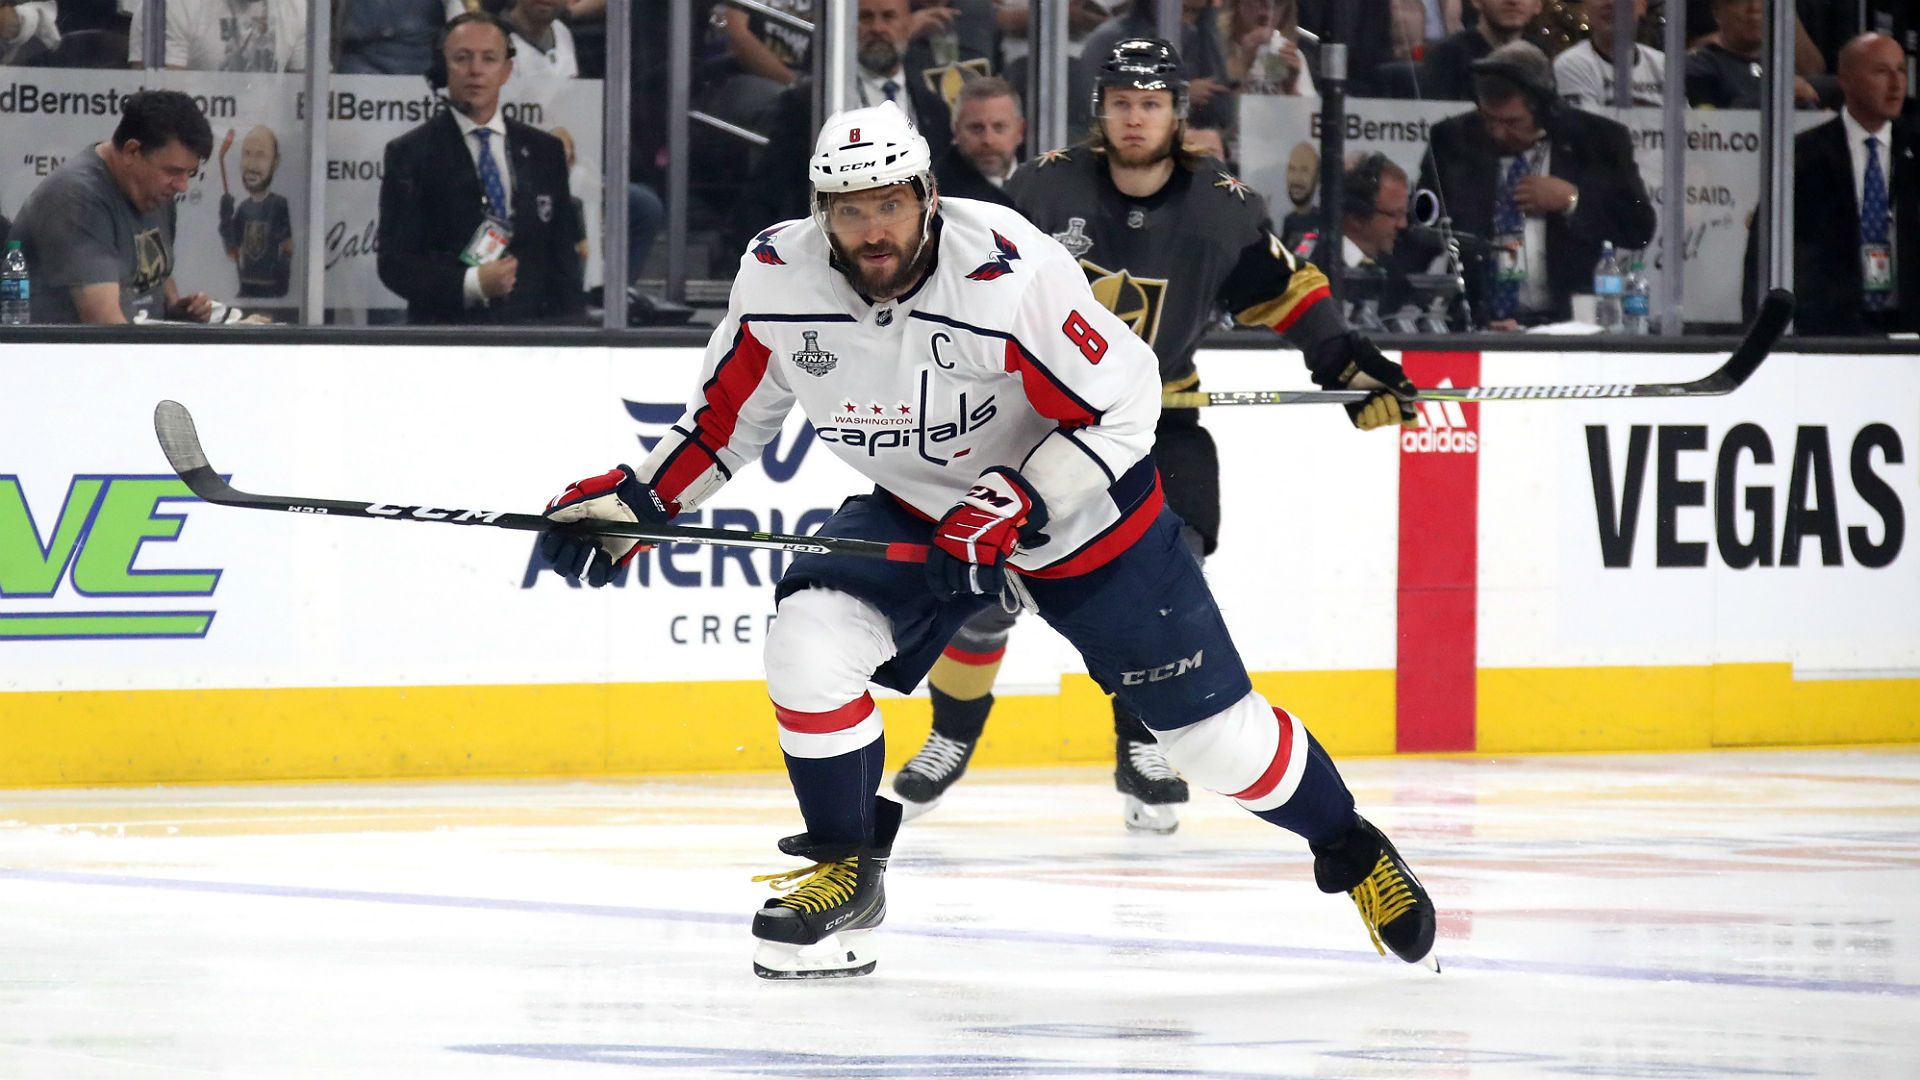 Capitals beat Vegas 3-1, lead Cup Final 2-1